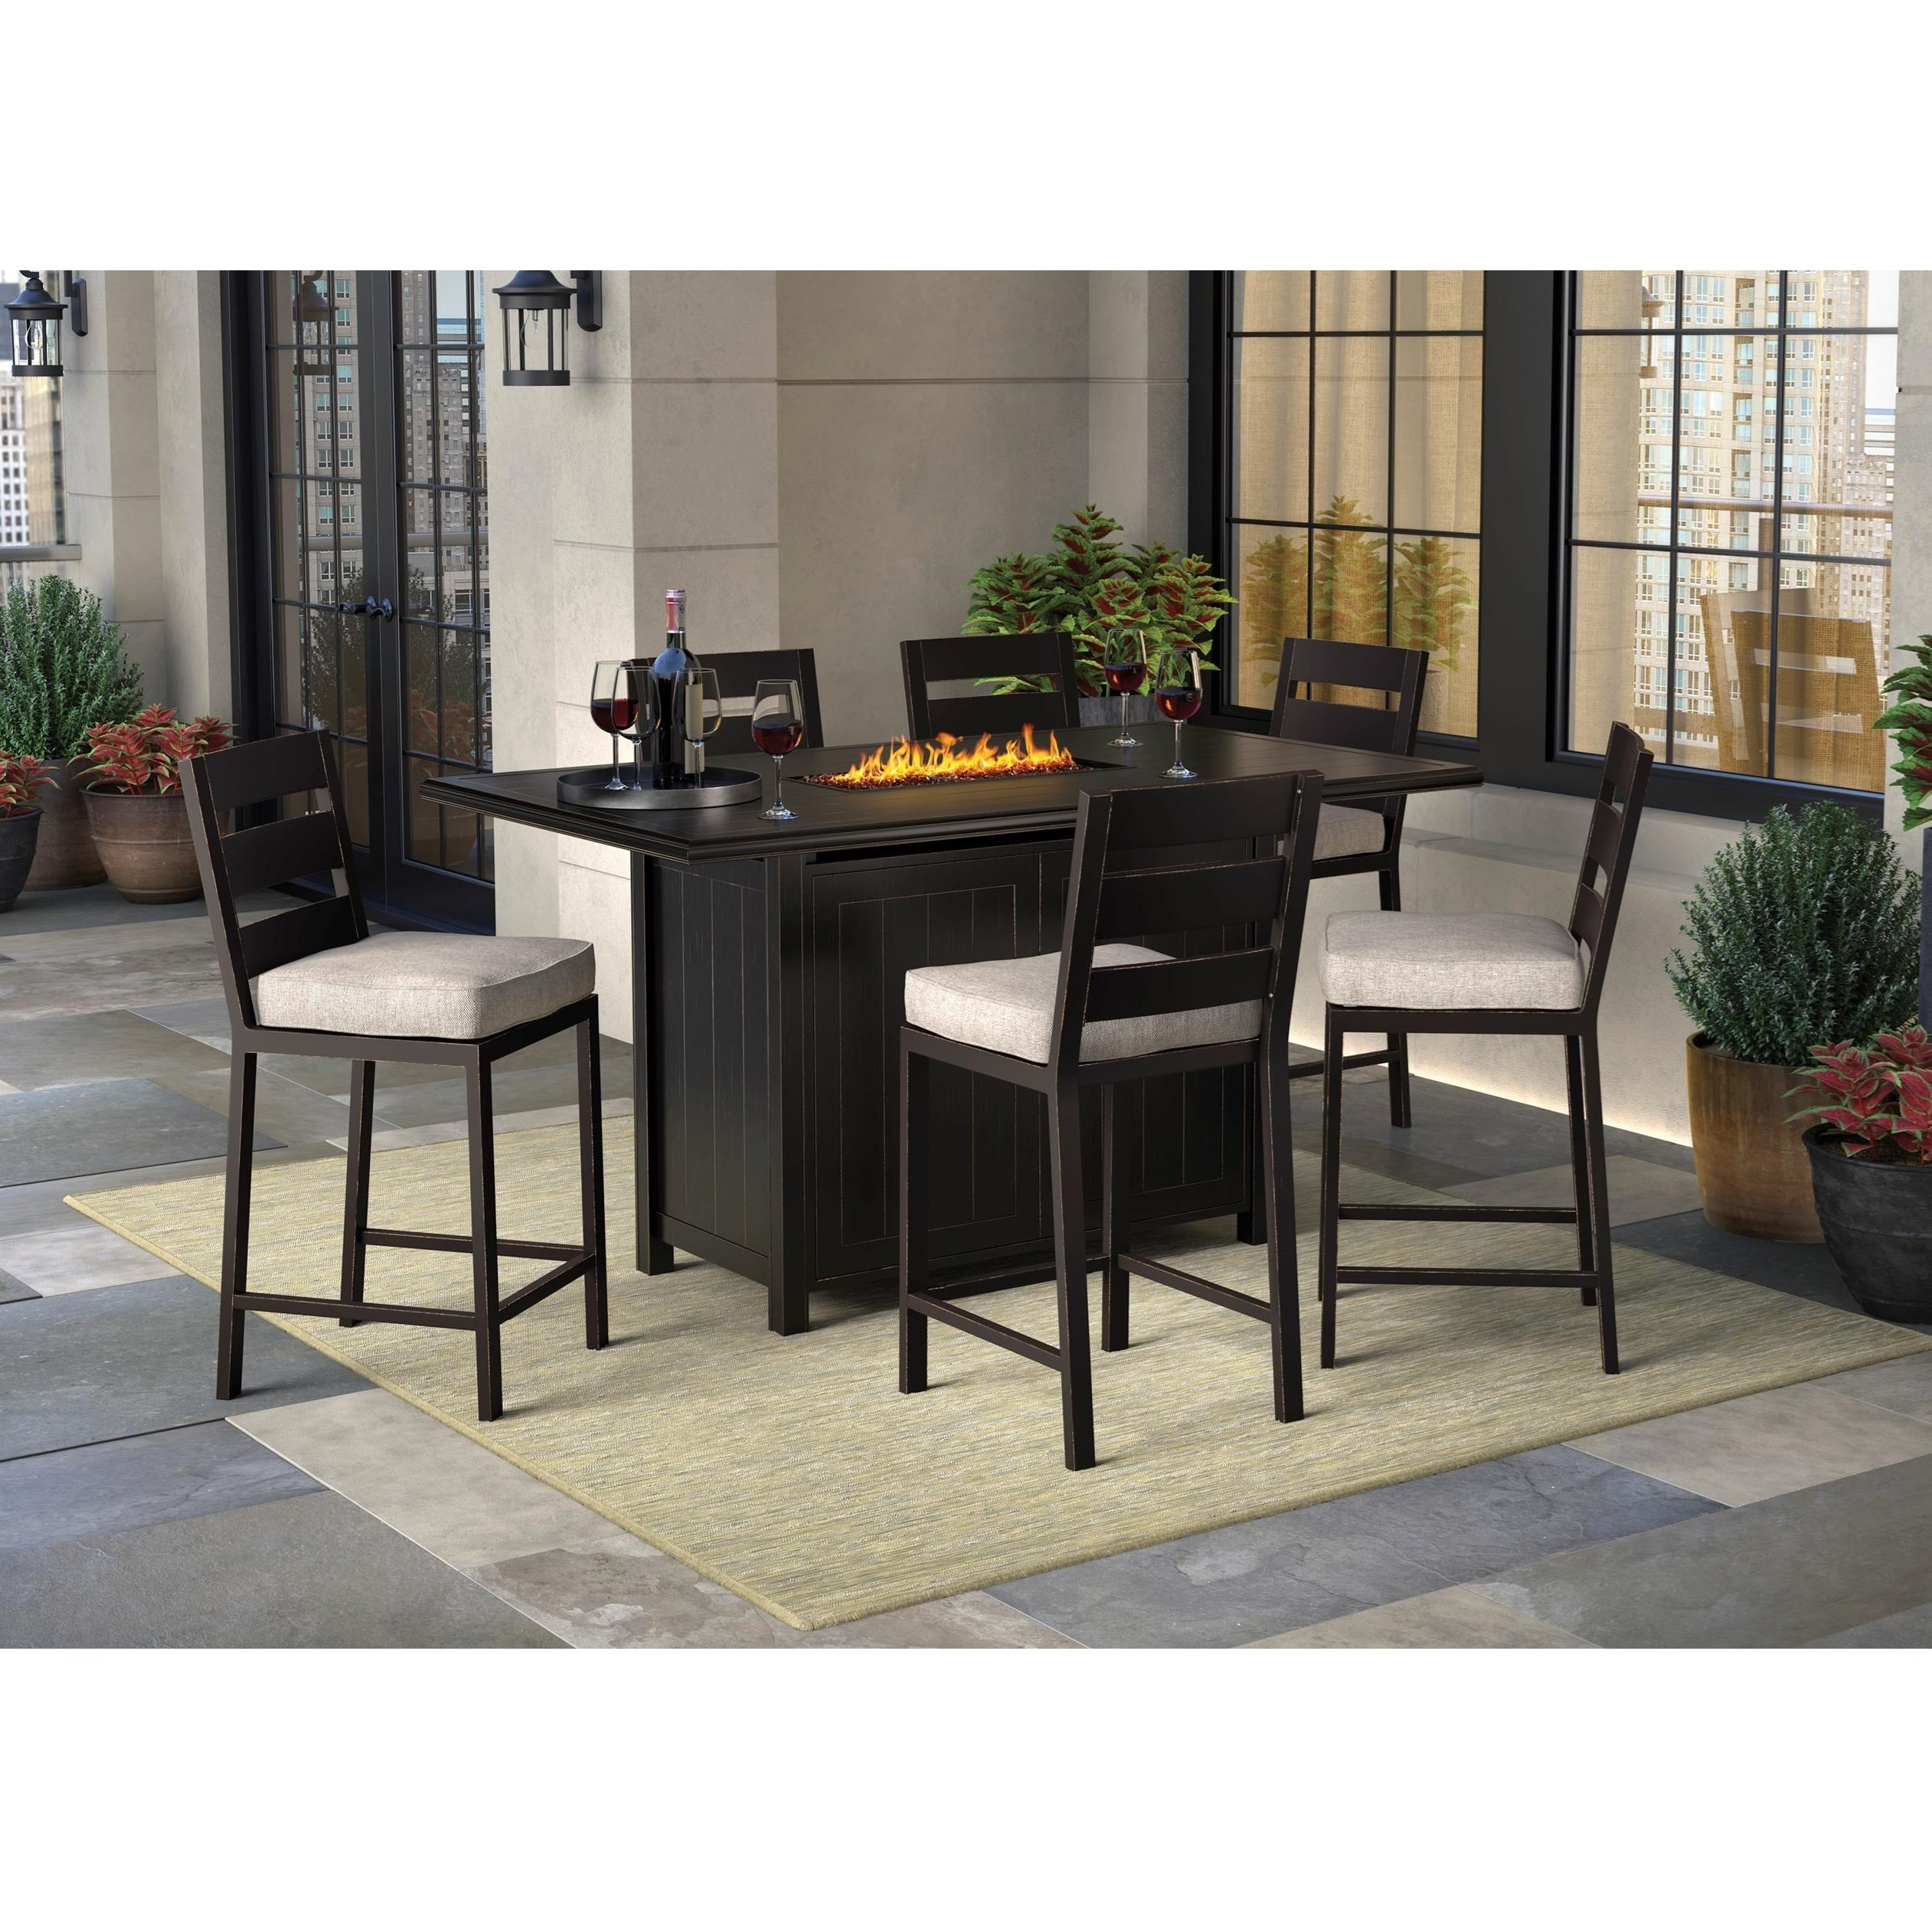 Signature Design By Ashley Perrymount 7 Piece Pub Dining